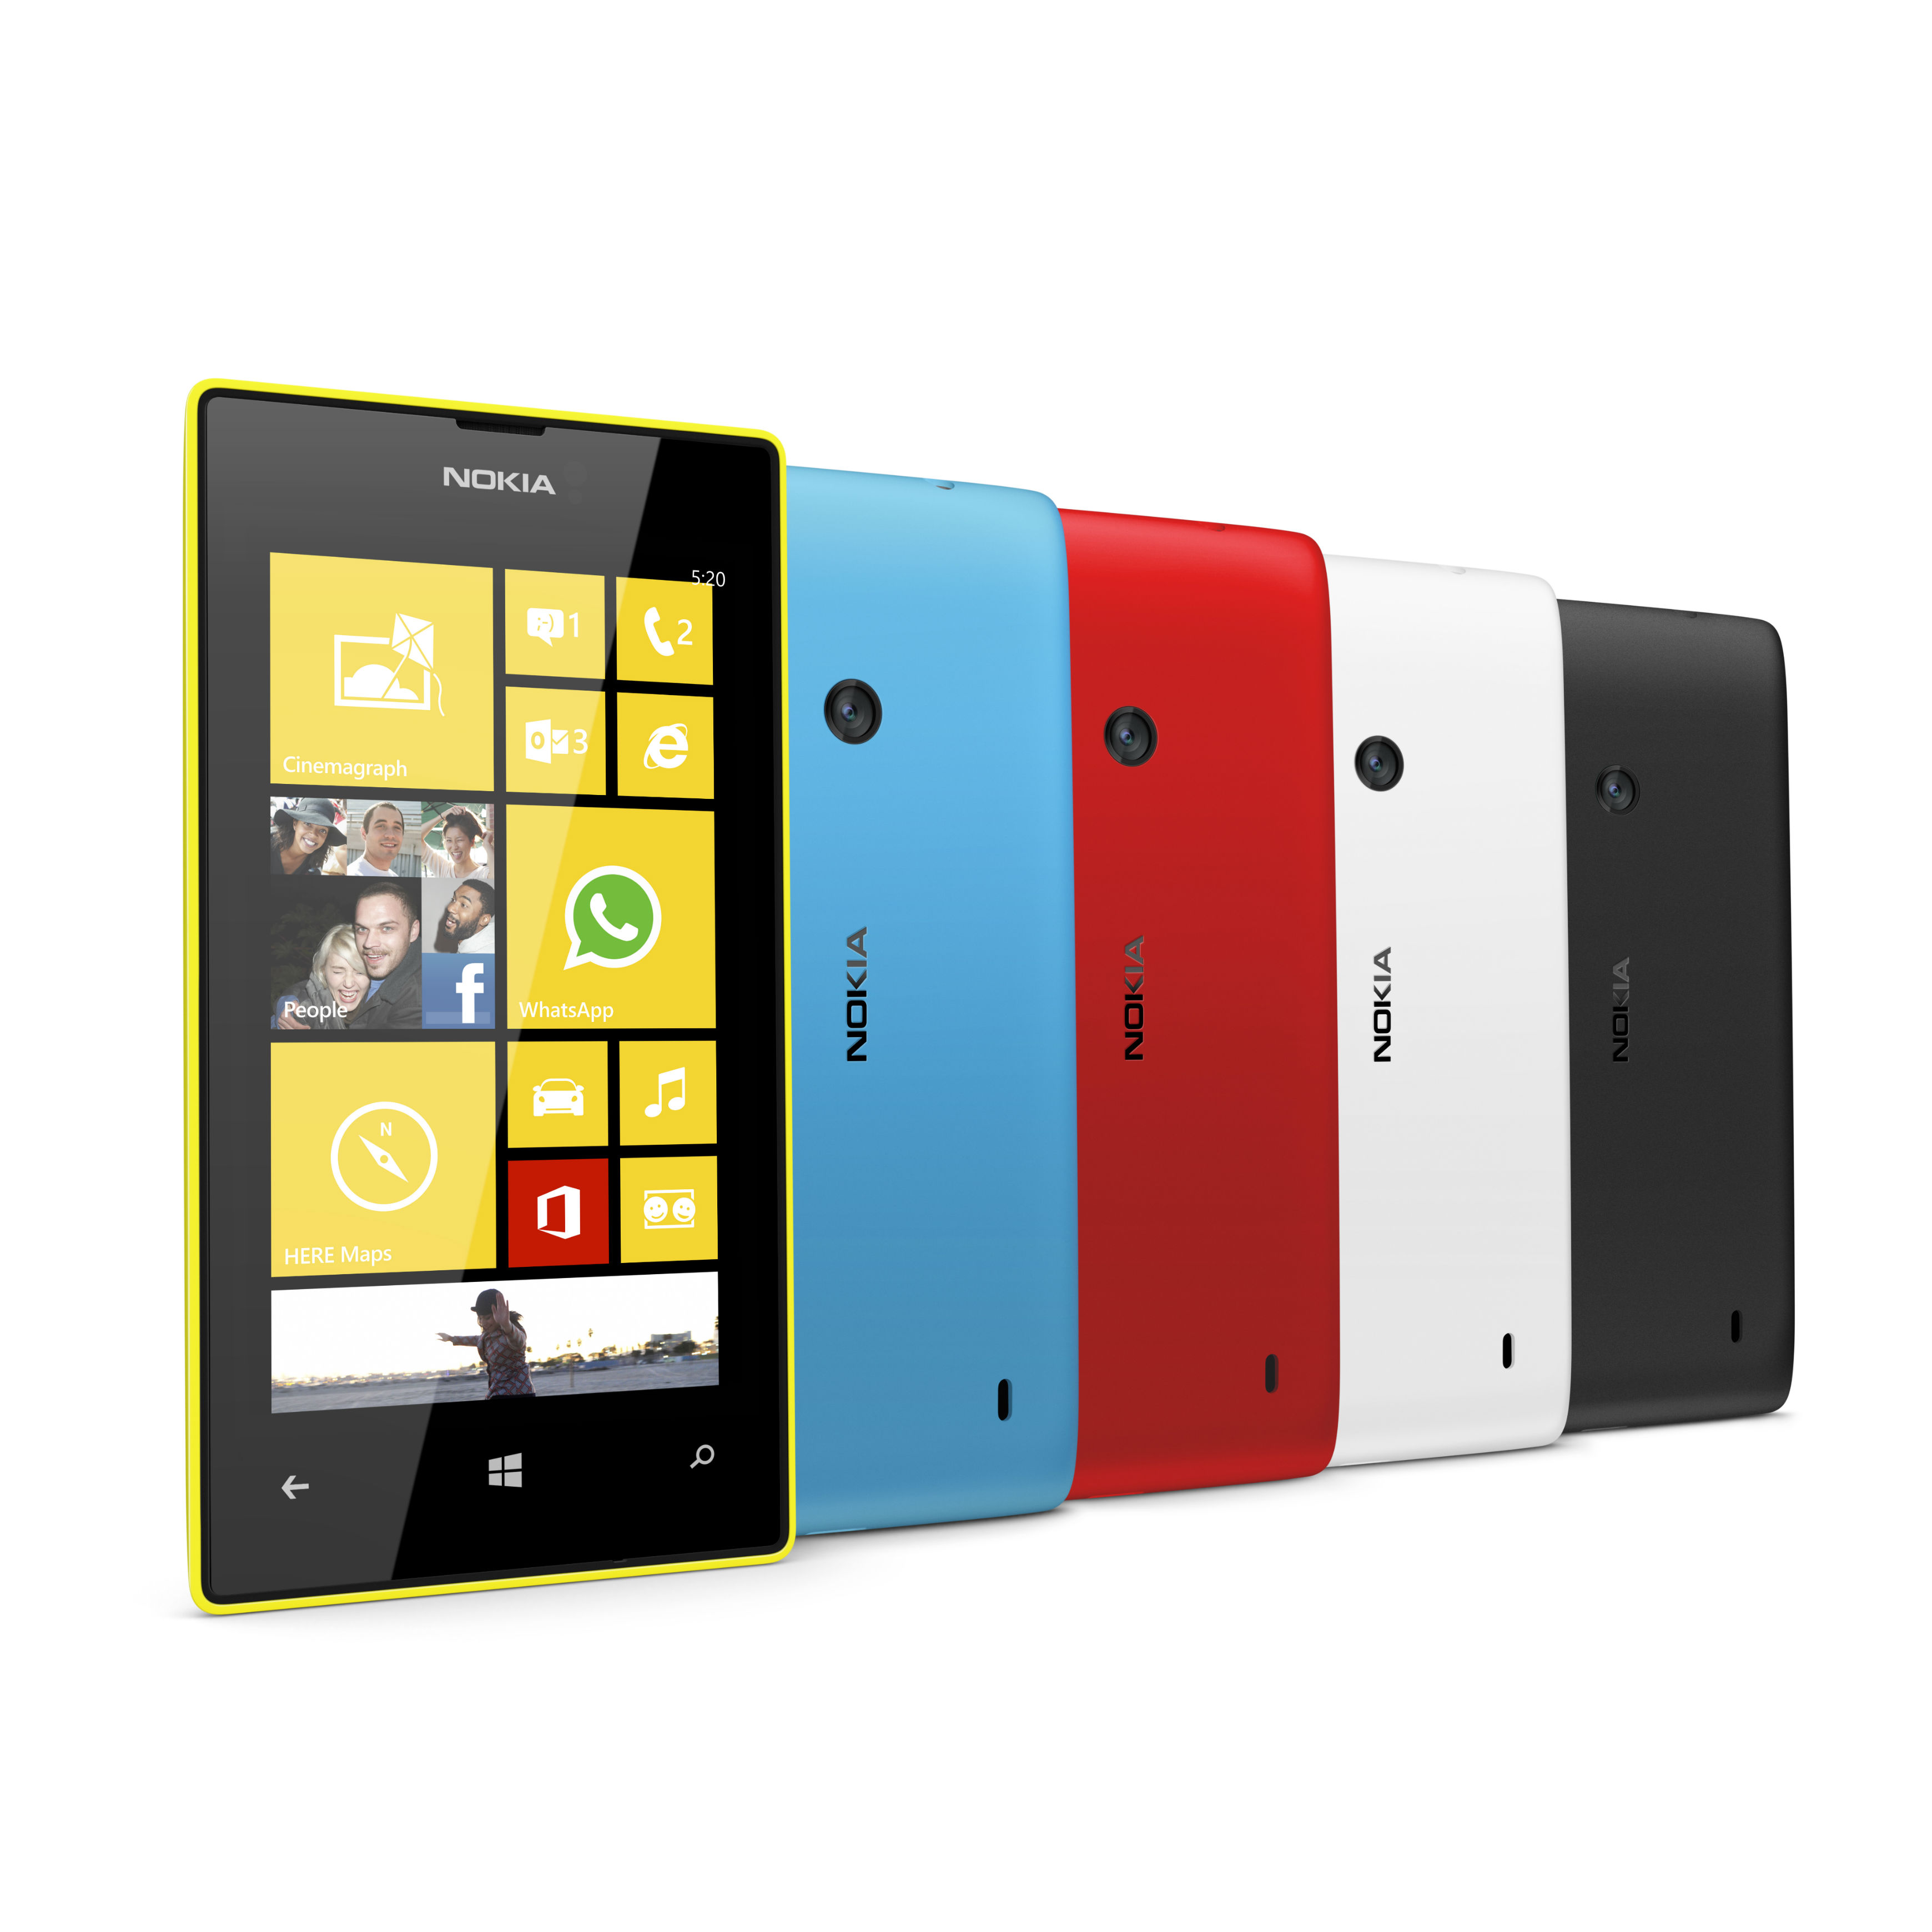 Nokia finally unveils not one but two windows phones the lumia 800 - Windows Phone First Update Portico Was A Minor Update Full Of Minor Enhancements And Bug Fixes First Of All You Could Now Keep Wifi On When The Screen